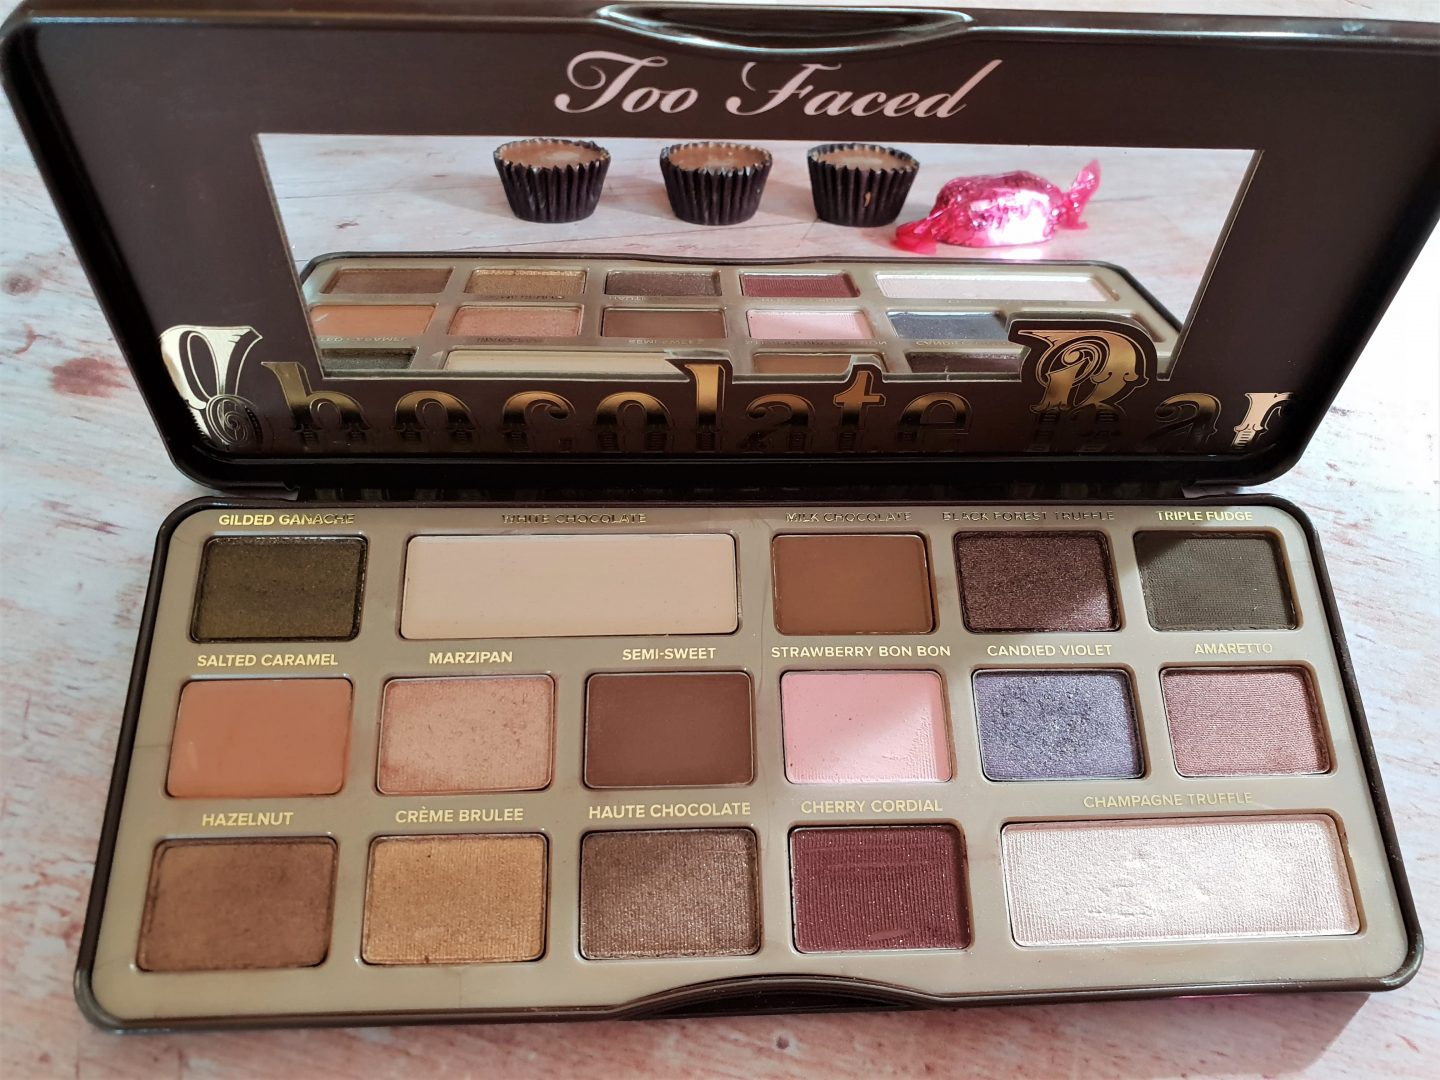 Too Faced Chocolate Bar Eyeshadow Palette colours - brown with a pop of colour